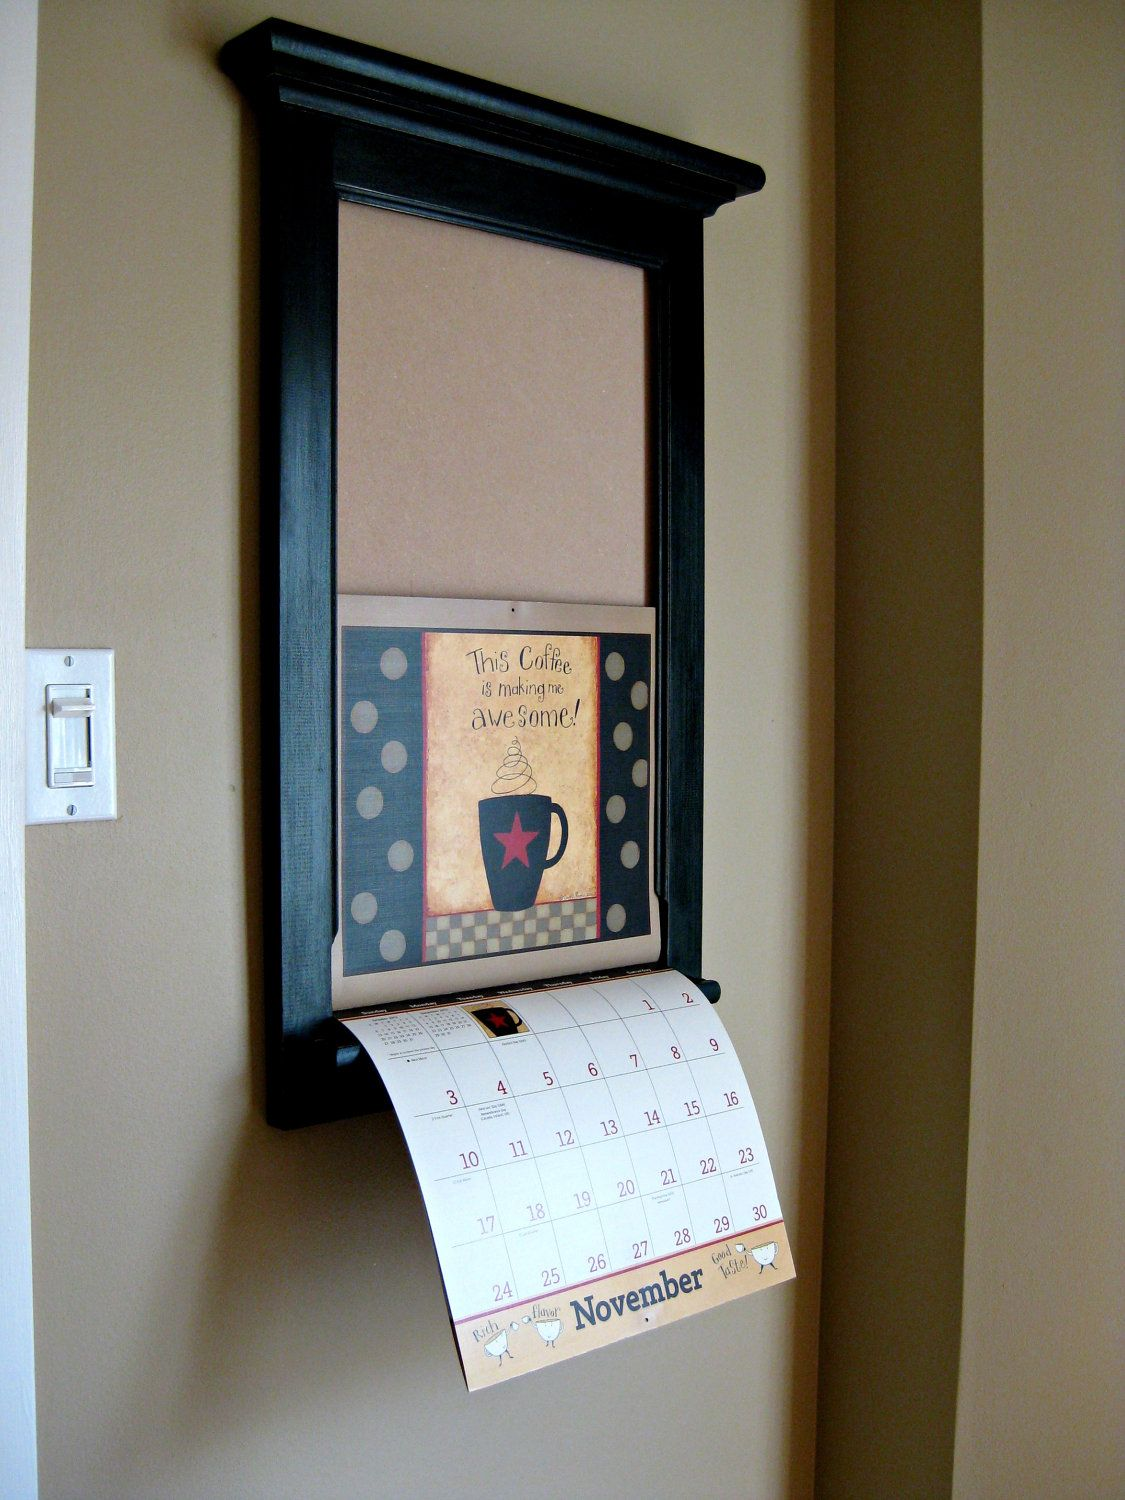 calendar frame family organizer storage shelf and keyhook furniture front loading slide calendar frame for lang calendar